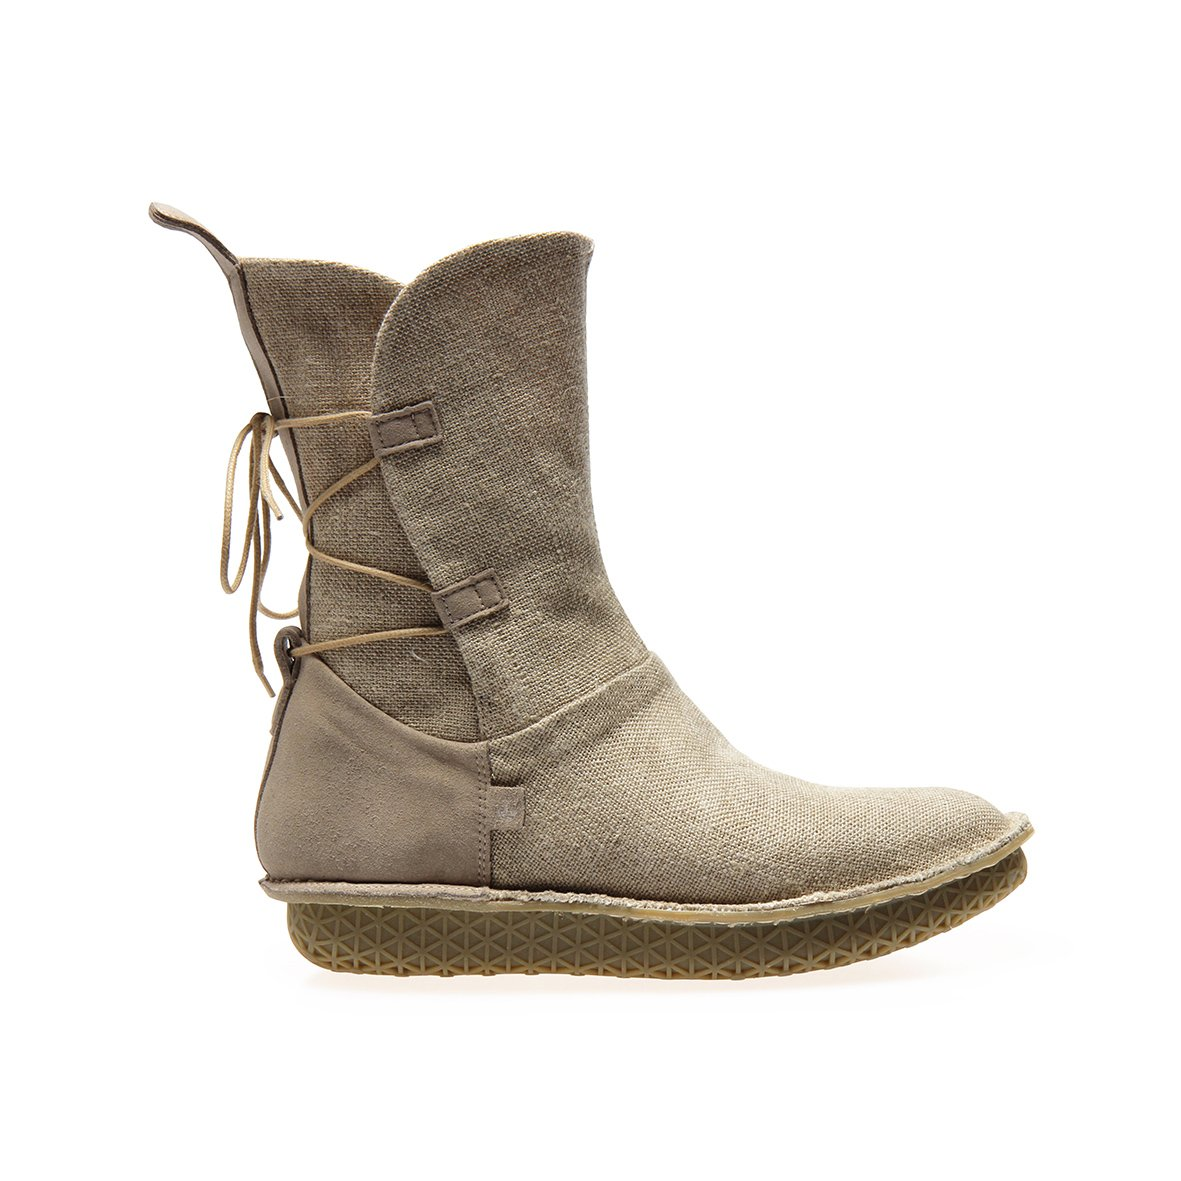 Women's Po-Zu x Star Wars Rey natural linen boots